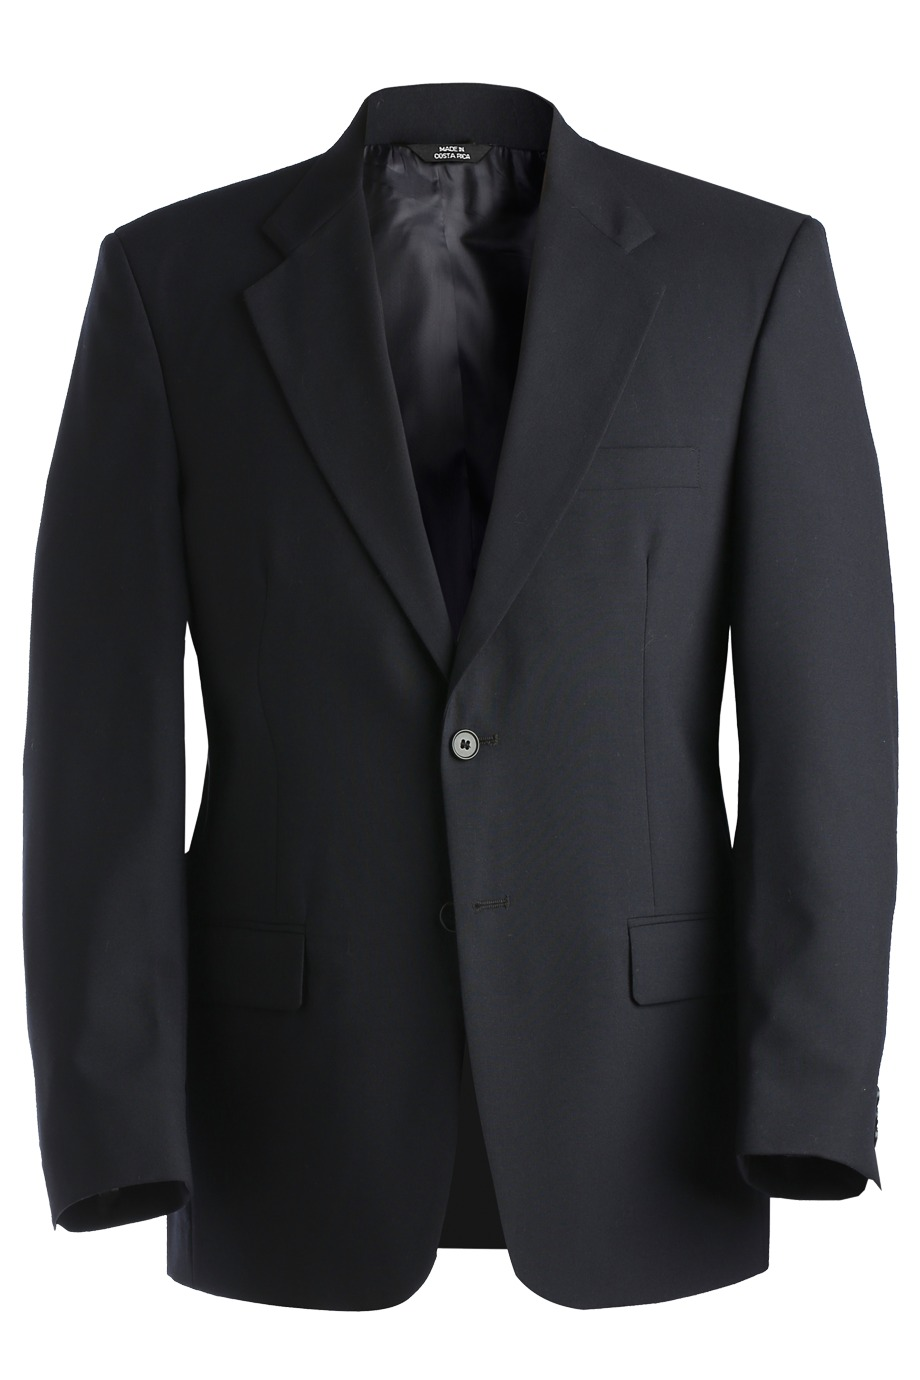 Edwards Garment 3680 - Suit Coat